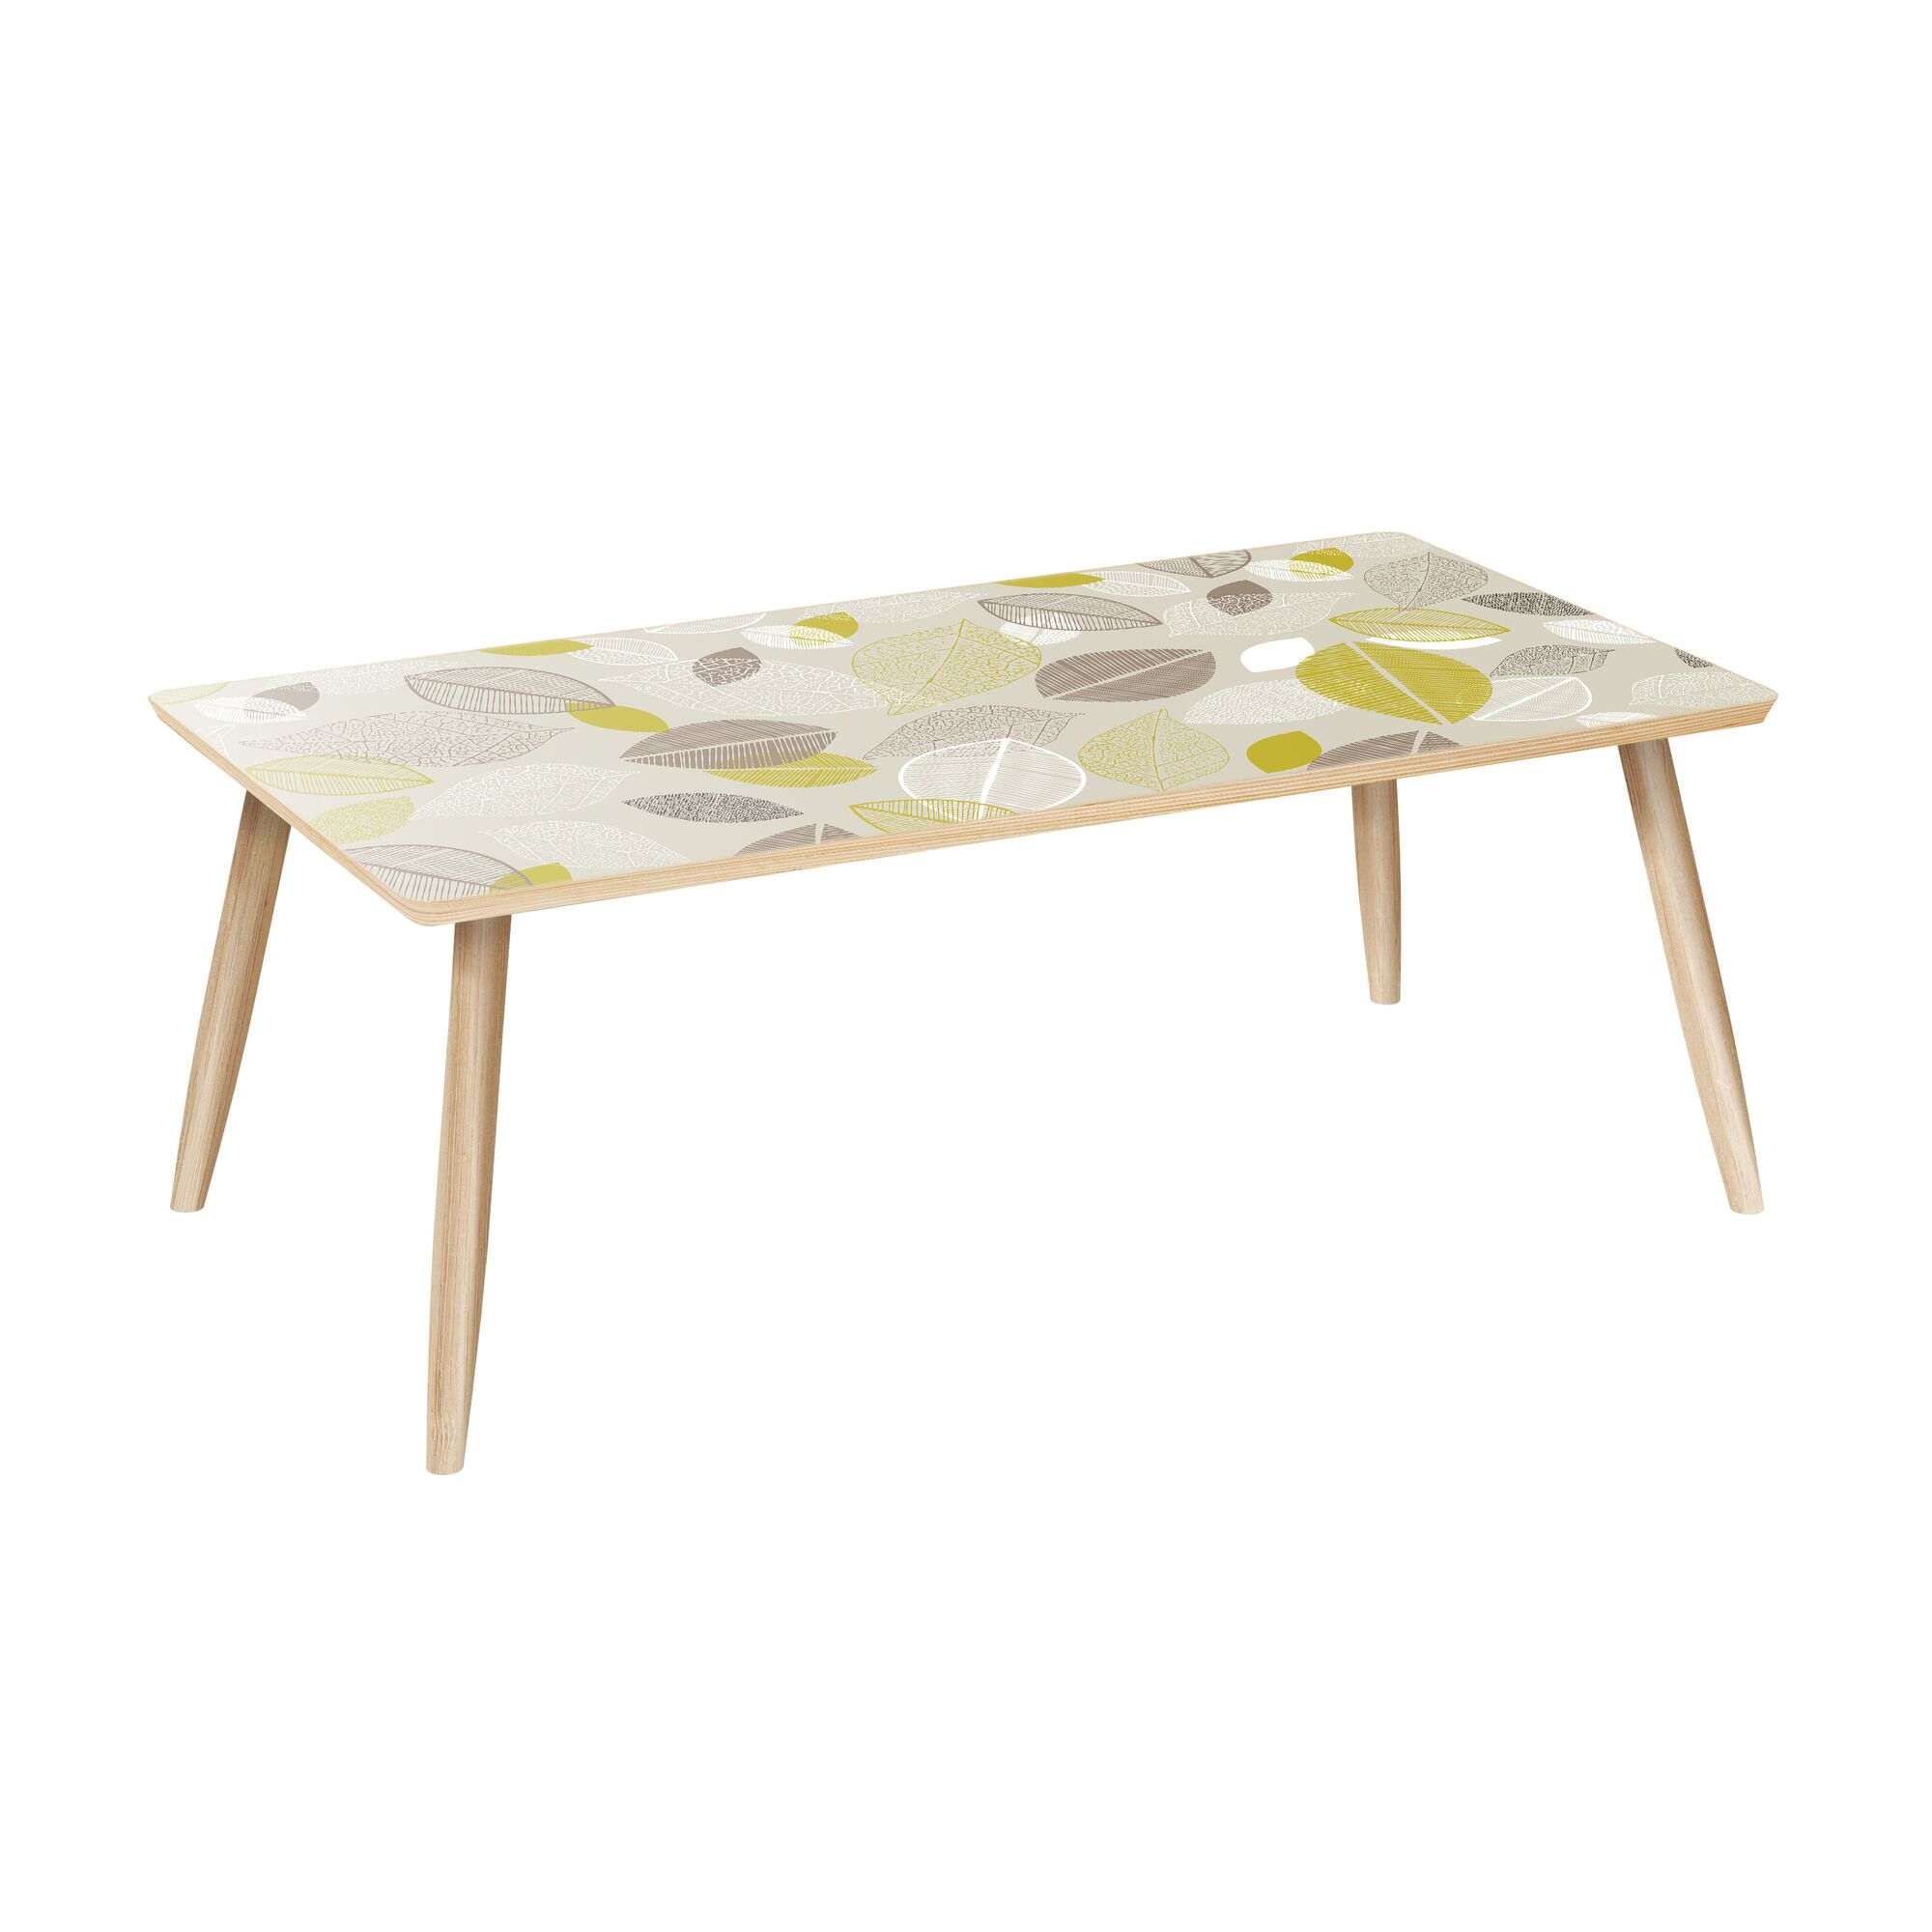 Mamie Coffee Table Table Base Color: Natural, Table Top Color: Blue